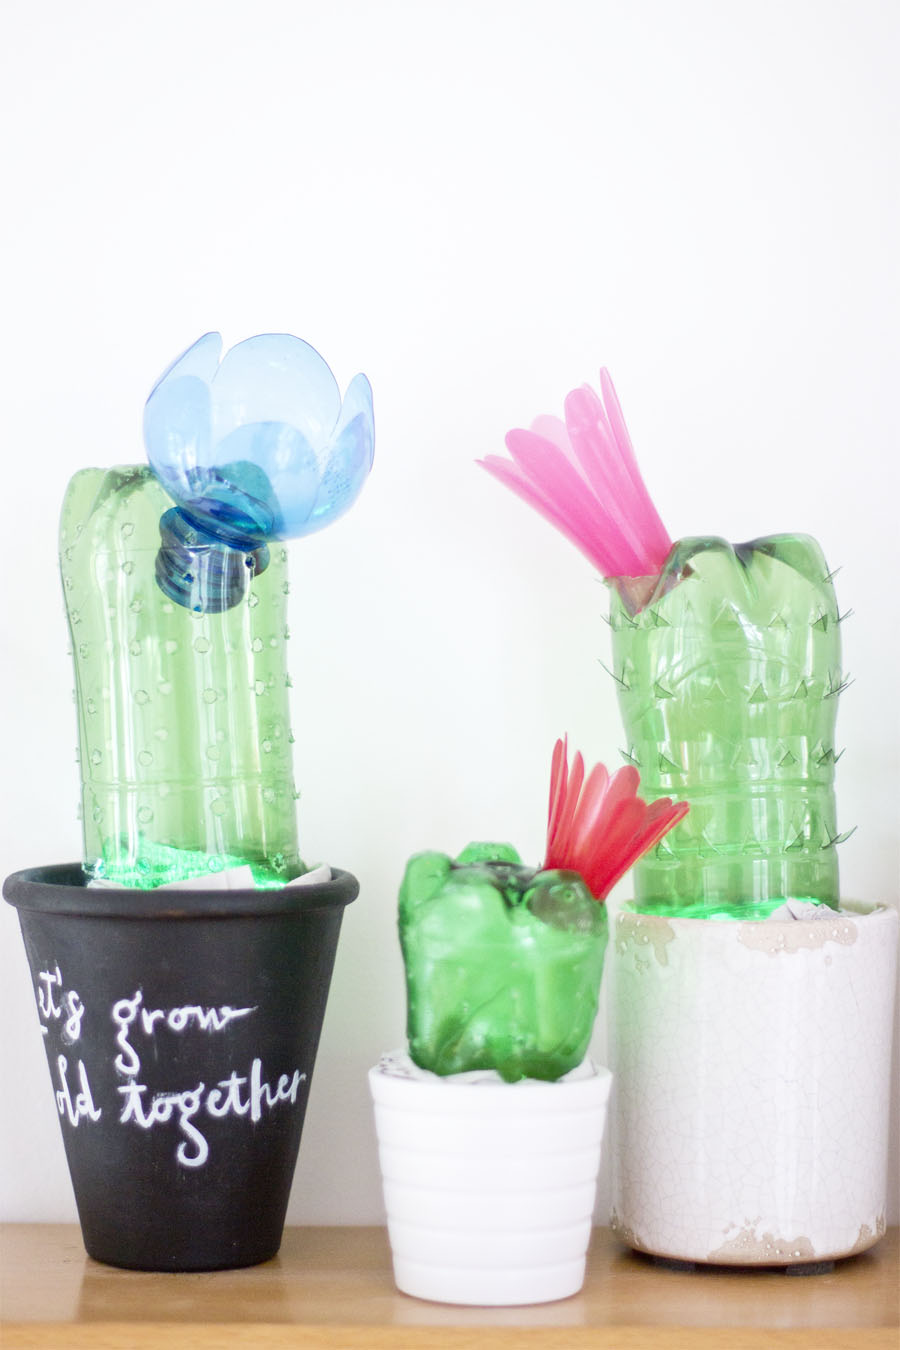 DIY-home-cedoration-upcycled-plastic-bottles-cactus